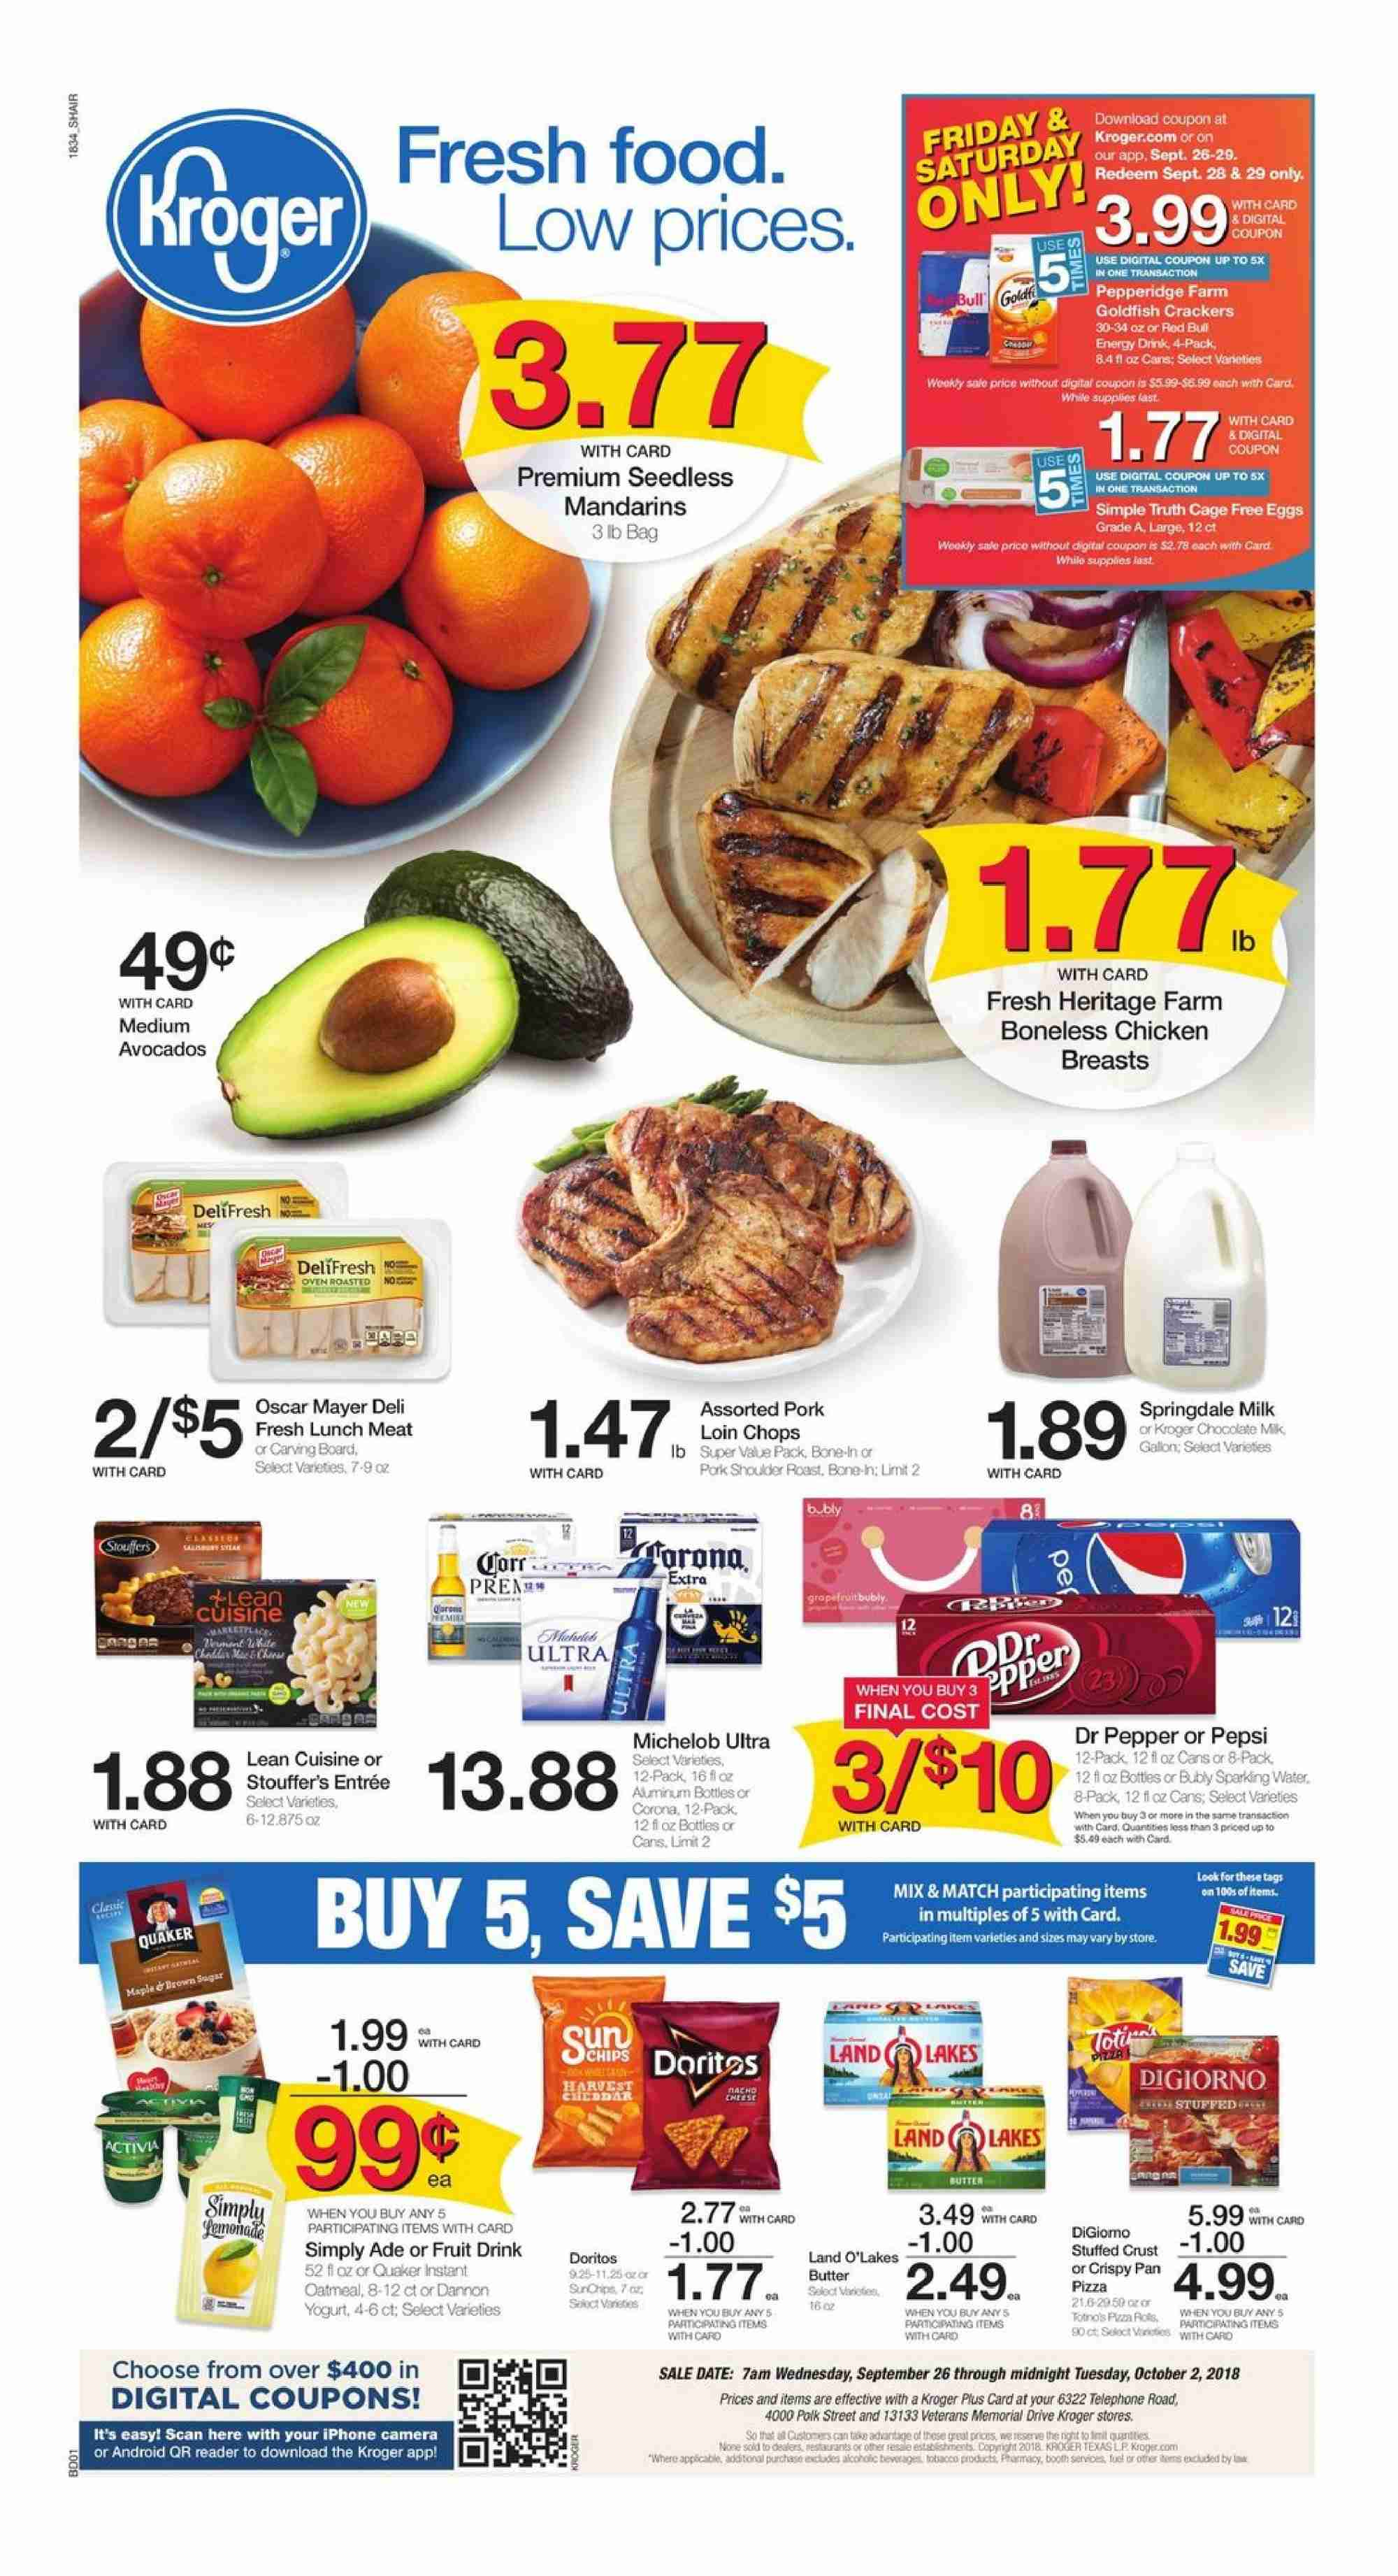 Kroger Flyer - 09.26.2018 - 10.02.2018 - Sales products - android, camera, doritos, eggs, milk, yogurt, pizza, polk, pork meat, pork shoulder, chicken, chicken breast, pepsi, oatmeal, chips, chocolate. Page 1.